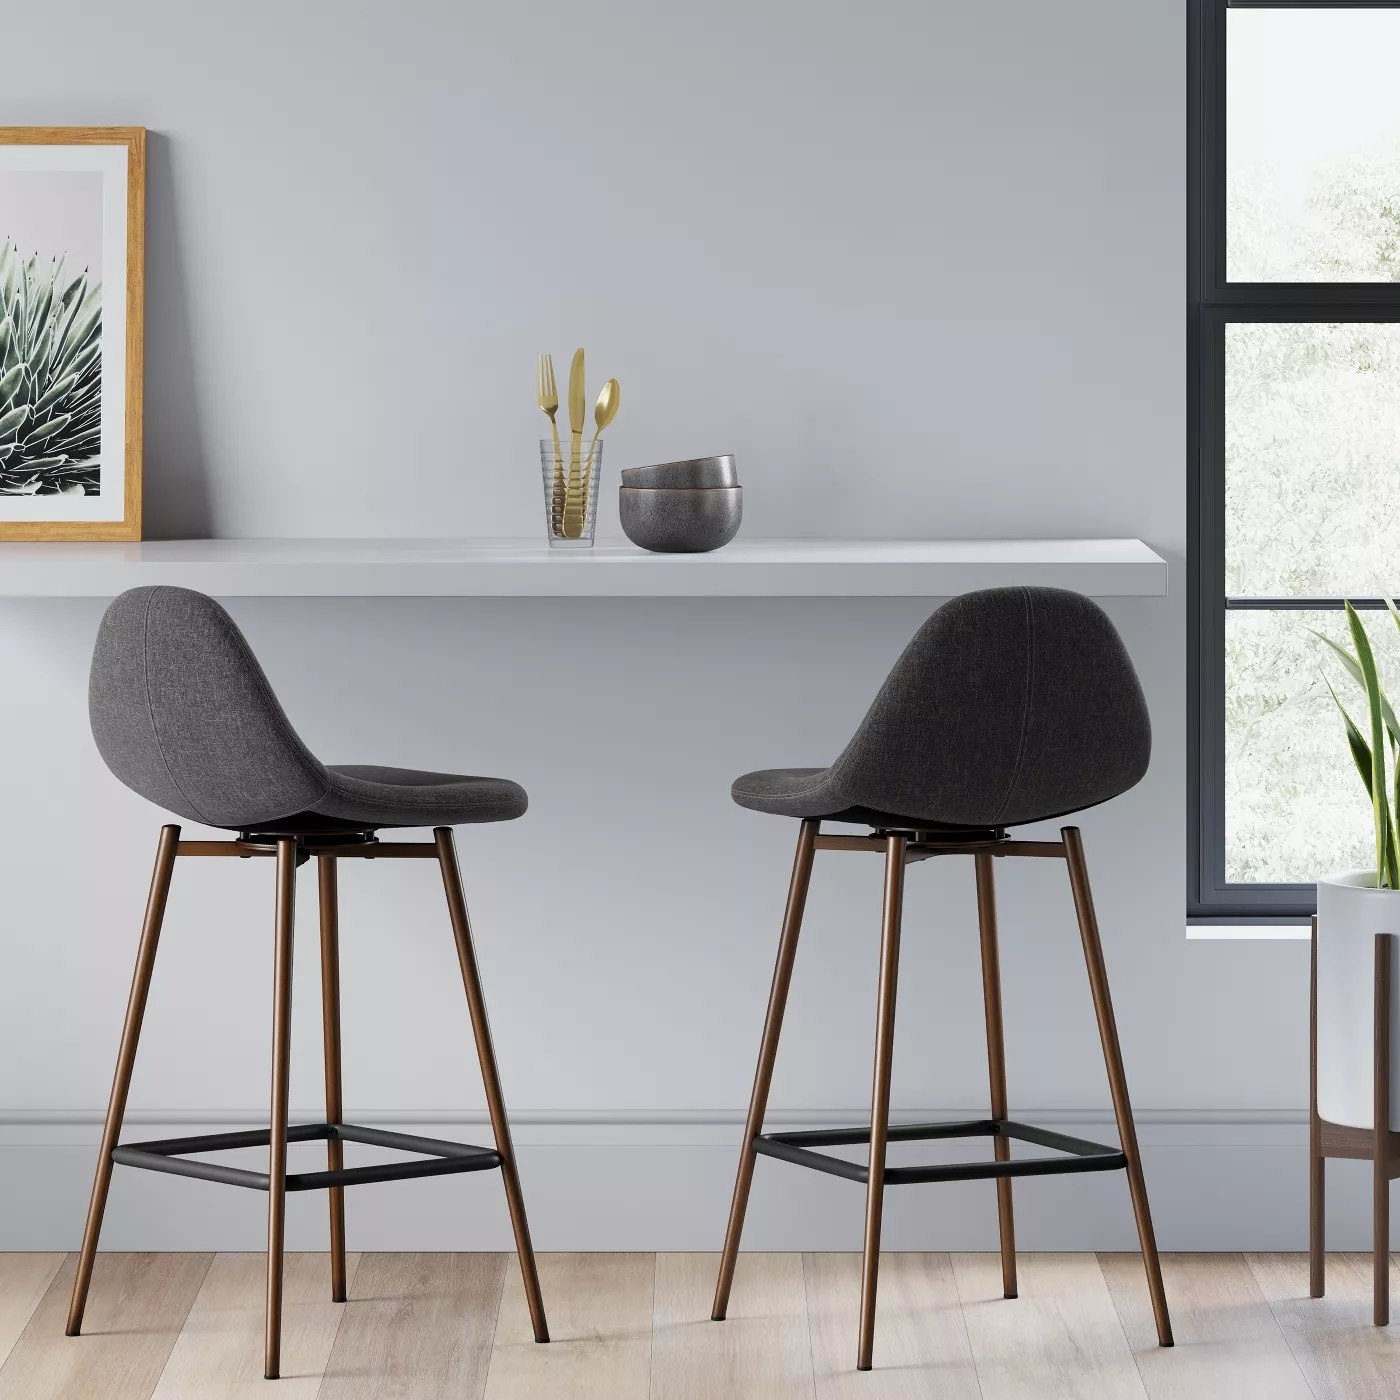 Two gray bar stools with metal legs in front of a kitchen island